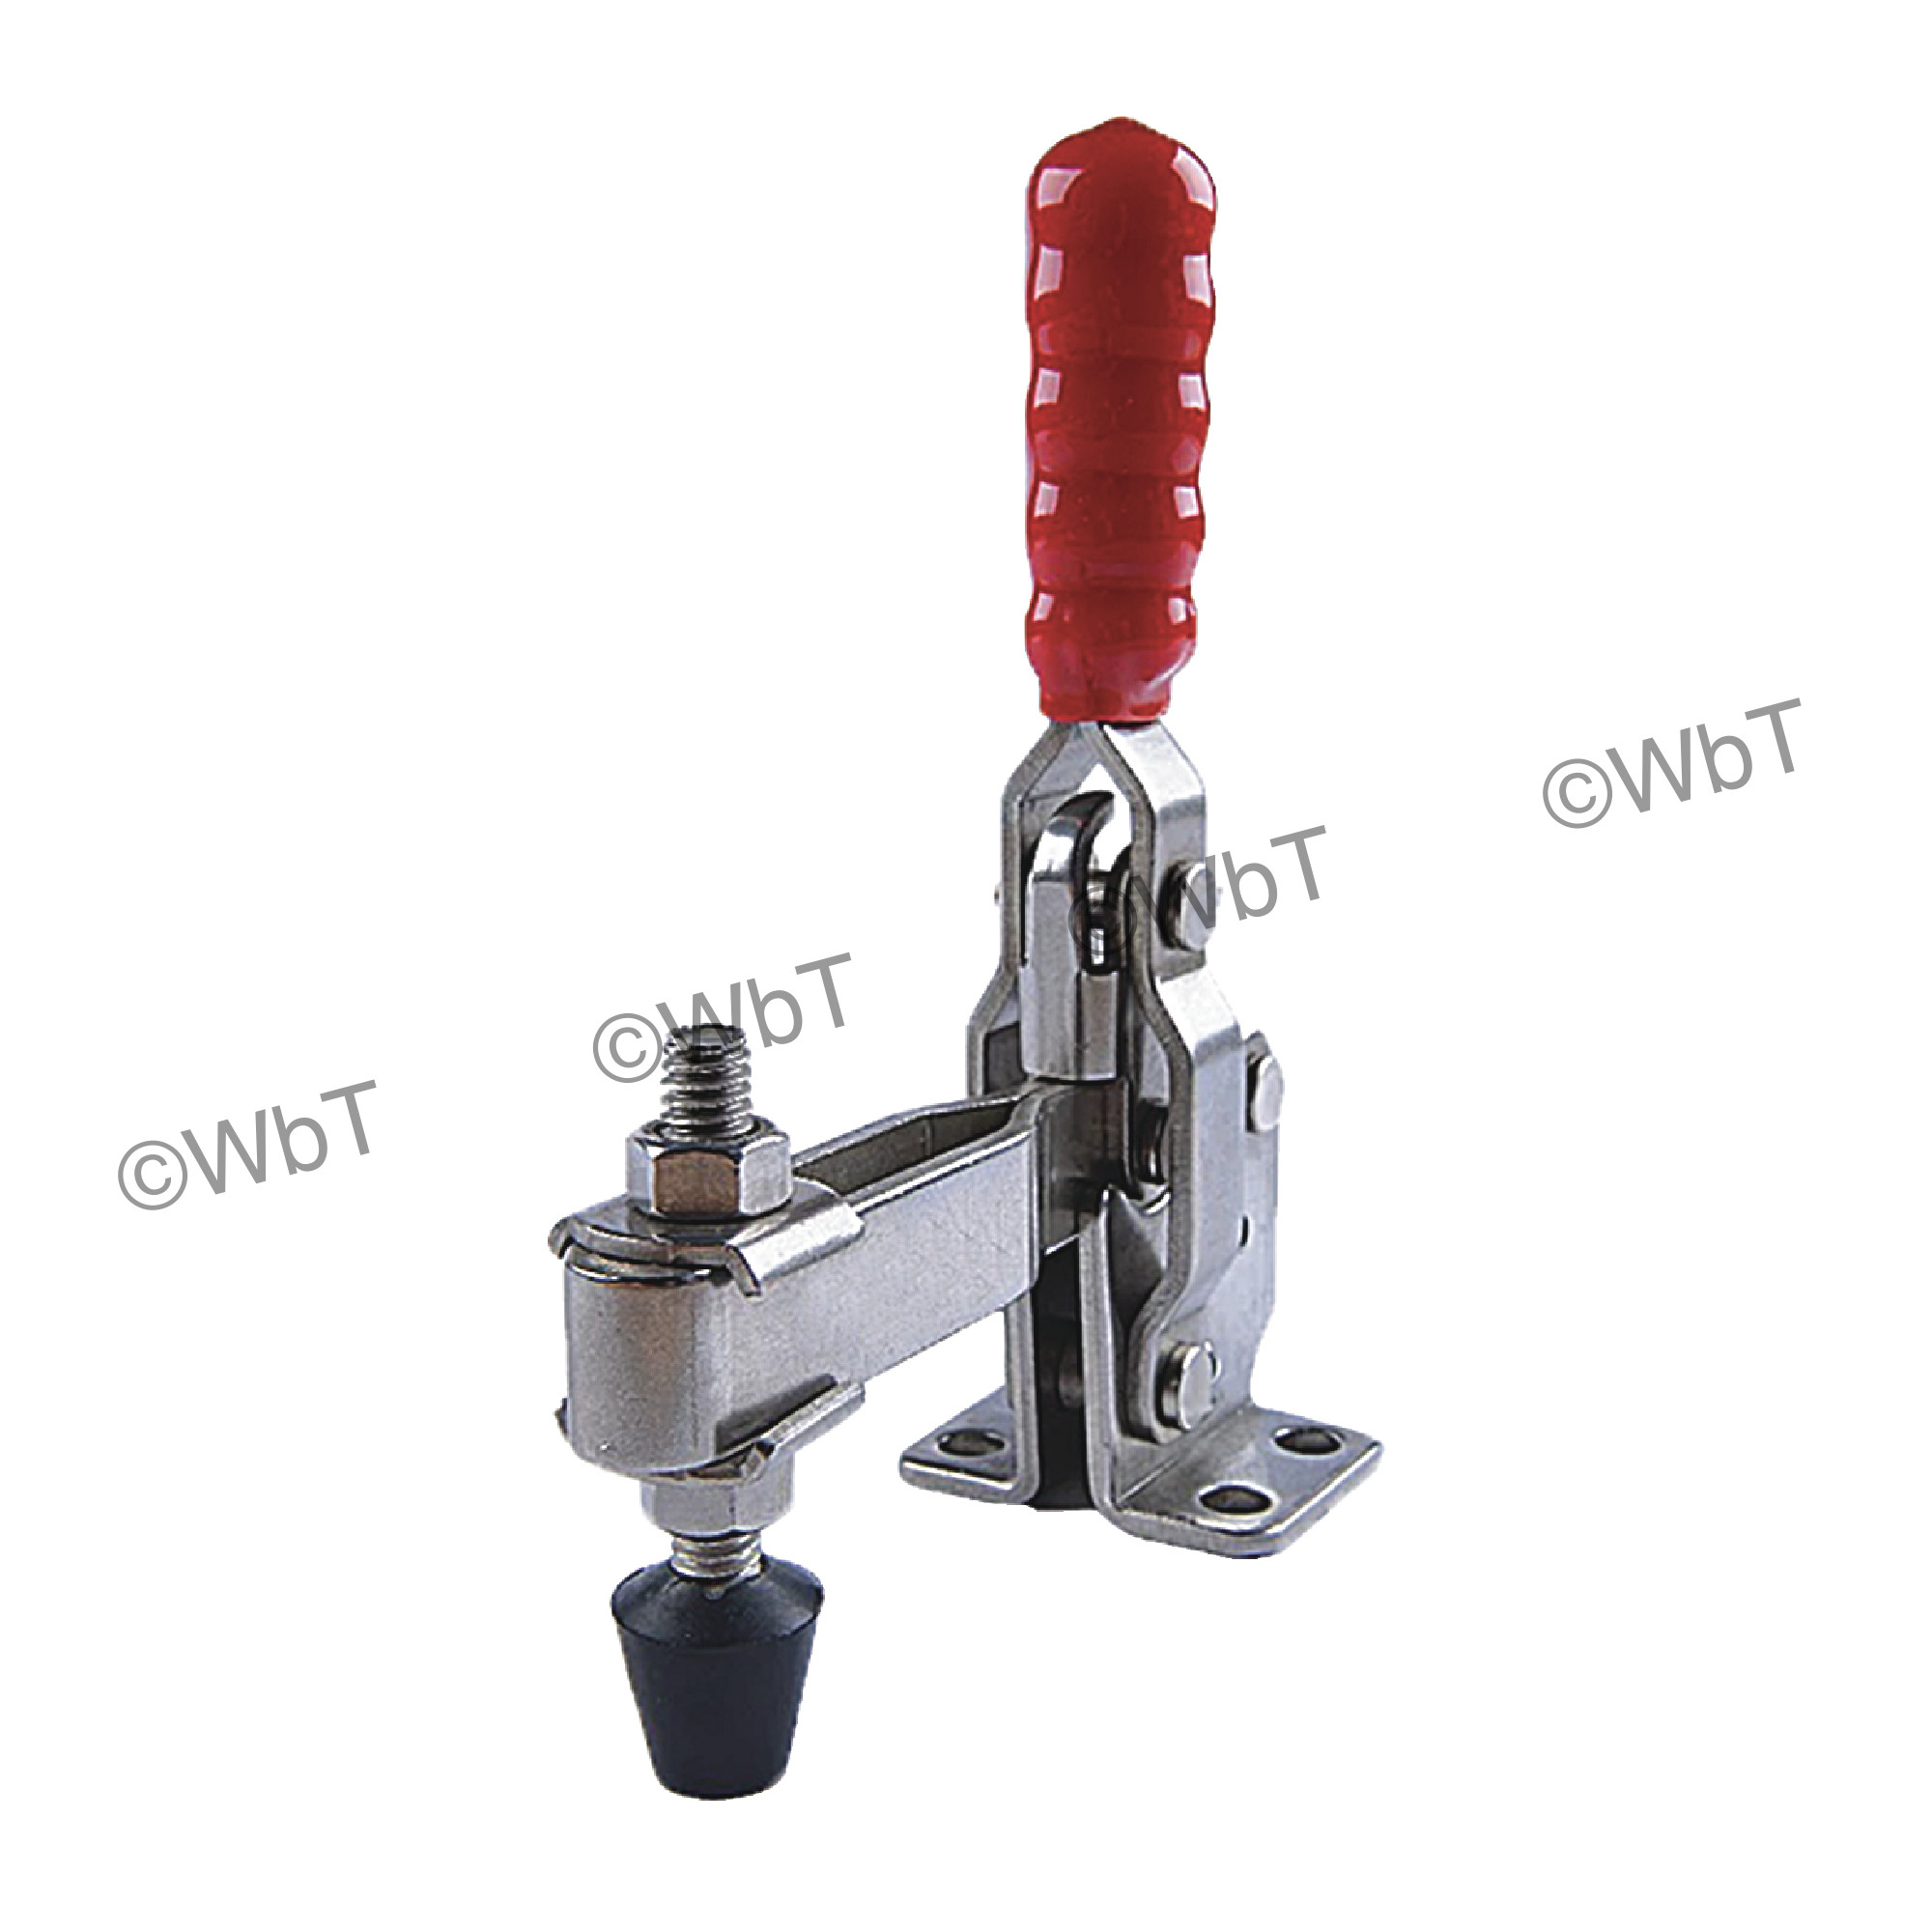 Vertical Hold Down Action Toggle Clamp